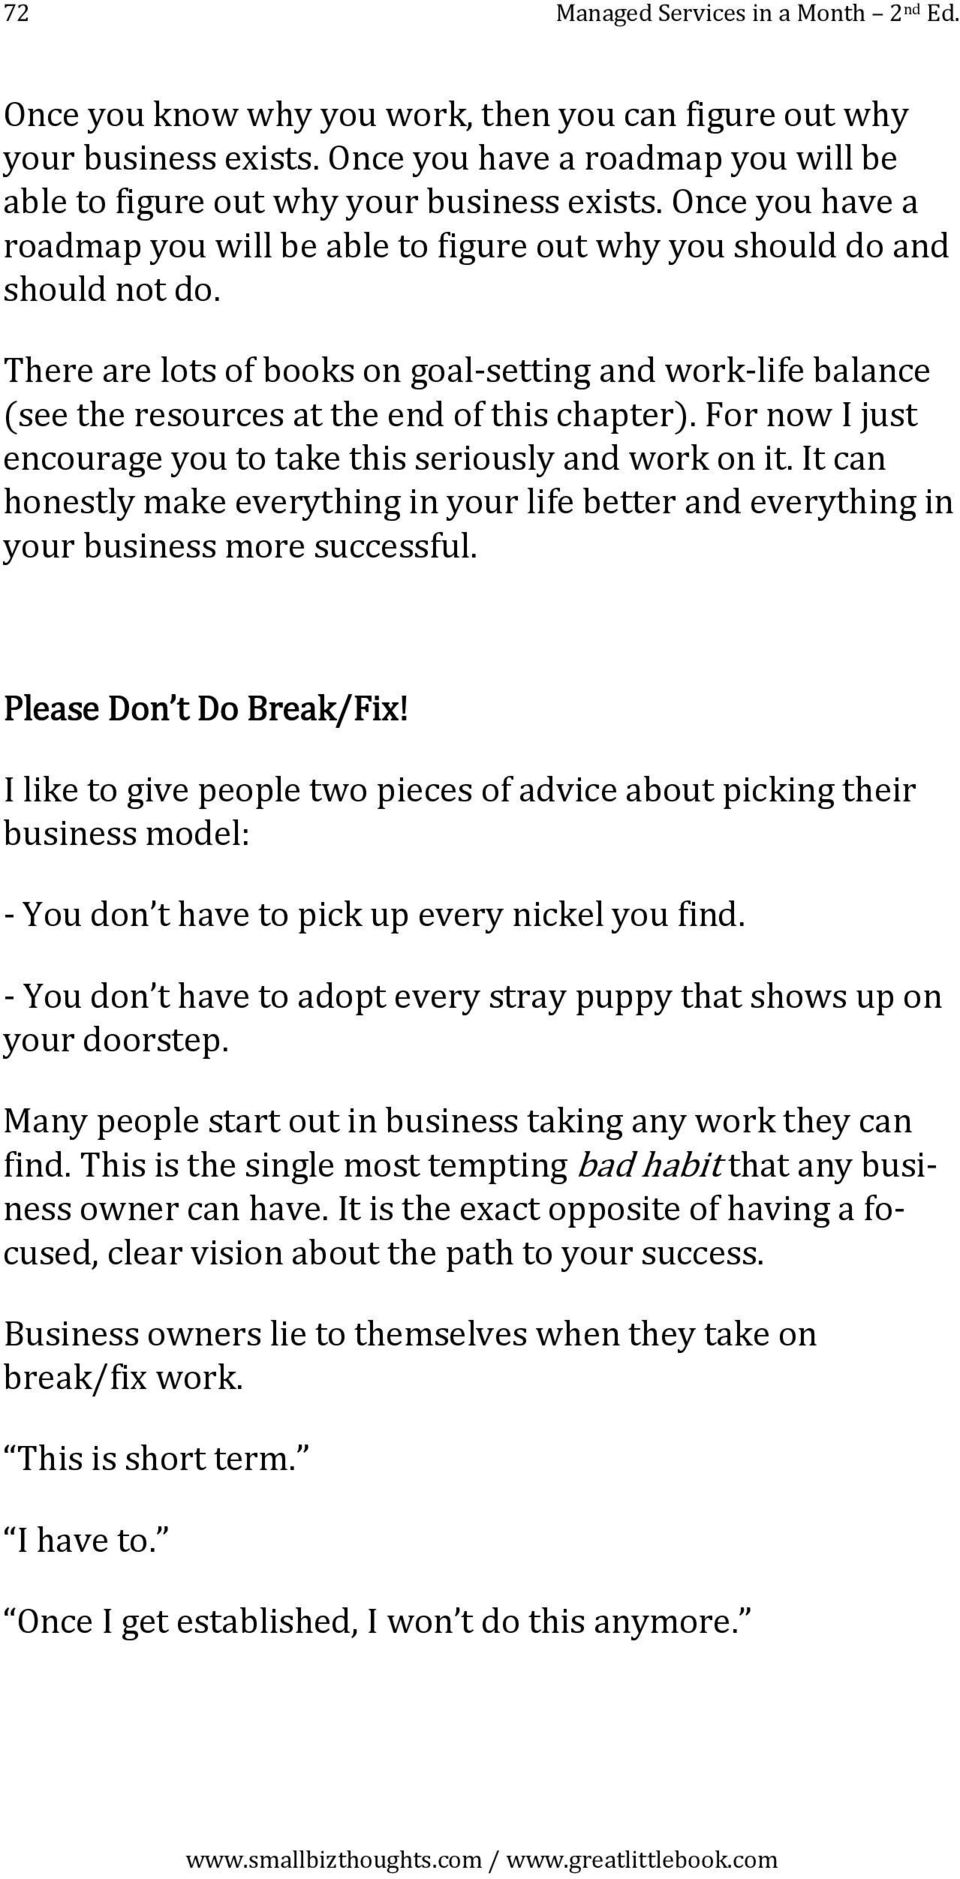 For now I just encourage you to take this seriously and work on it. It can honestly make everything in your life better and everything in your business more successful. Please Don t Do Break/Fix!